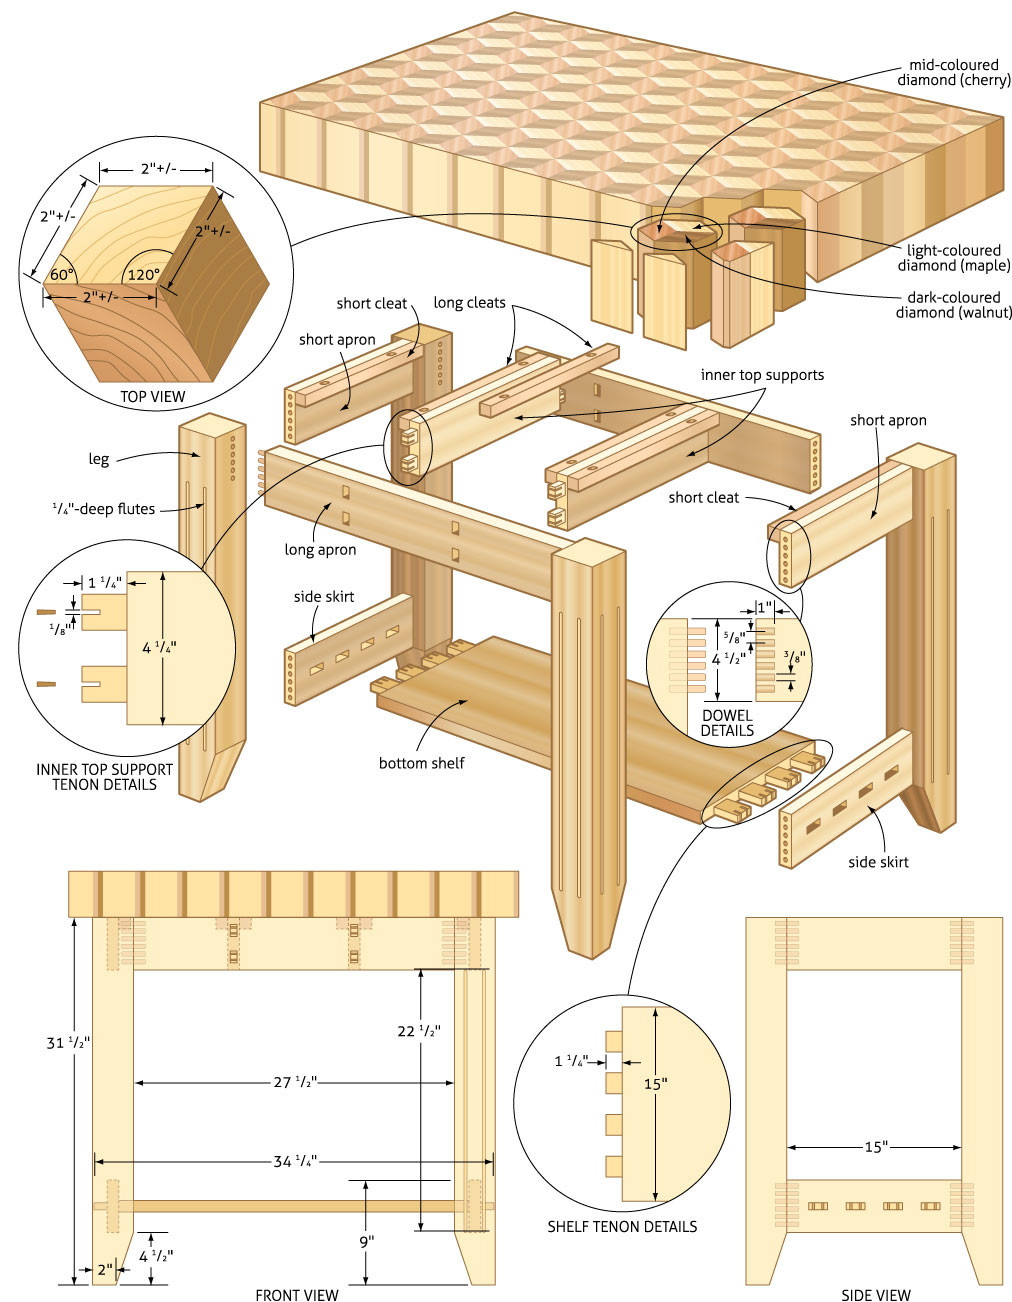 Best ideas about DIY Woodworking Plans . Save or Pin Woodworking Layout Tips With Brilliant In Australia Now.